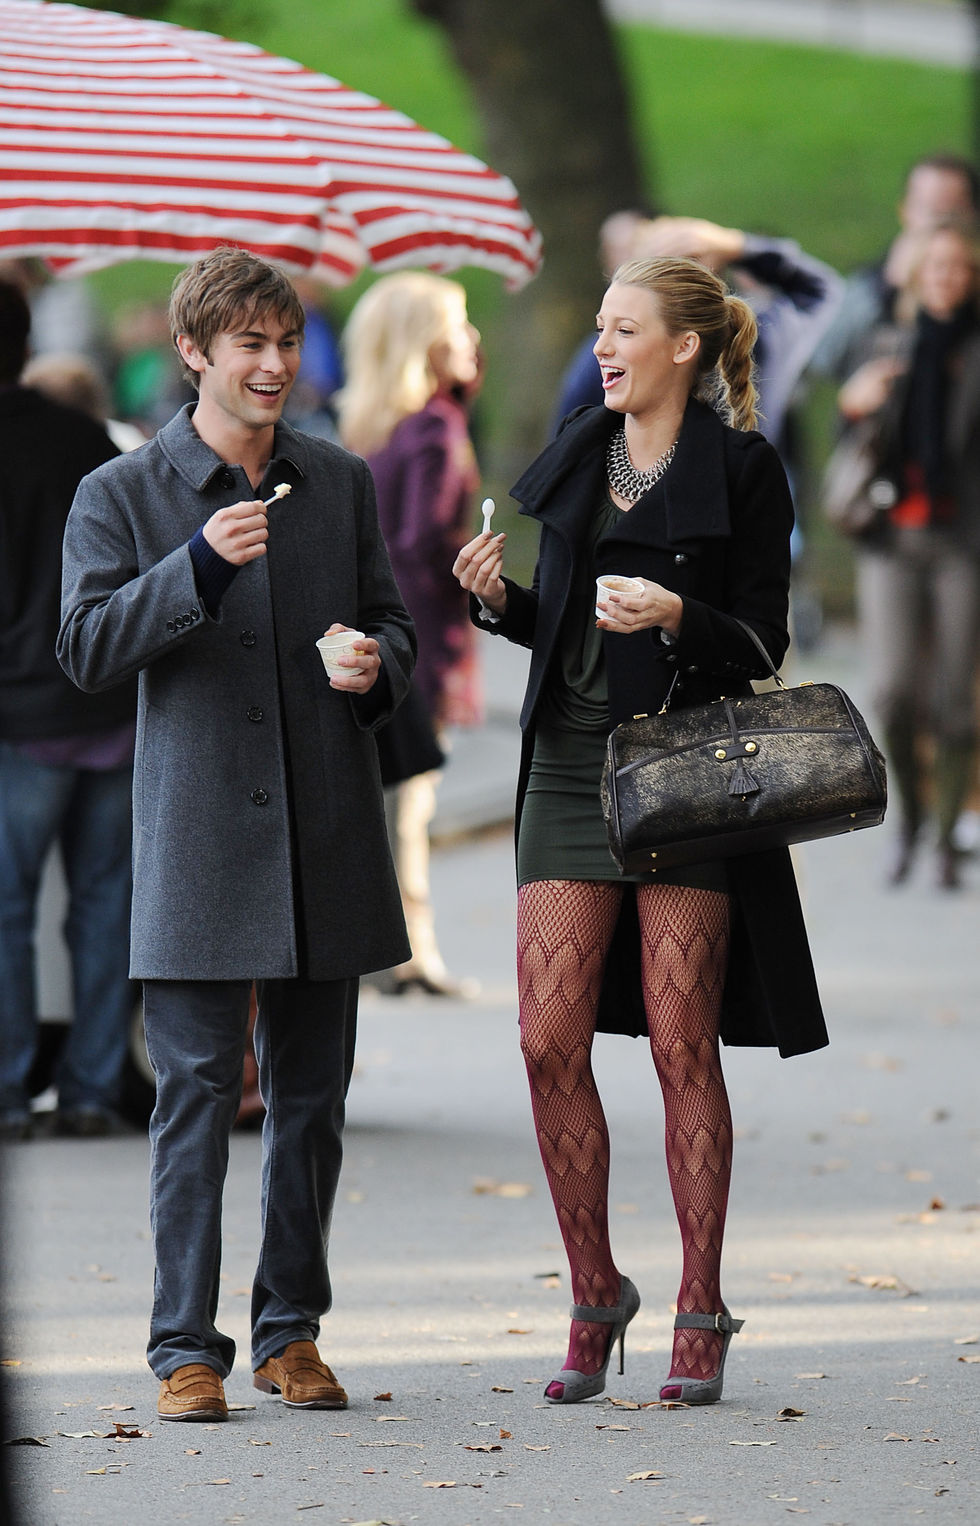 blake-lively-leggy-in-stockings-on-gossip-girl-set-01